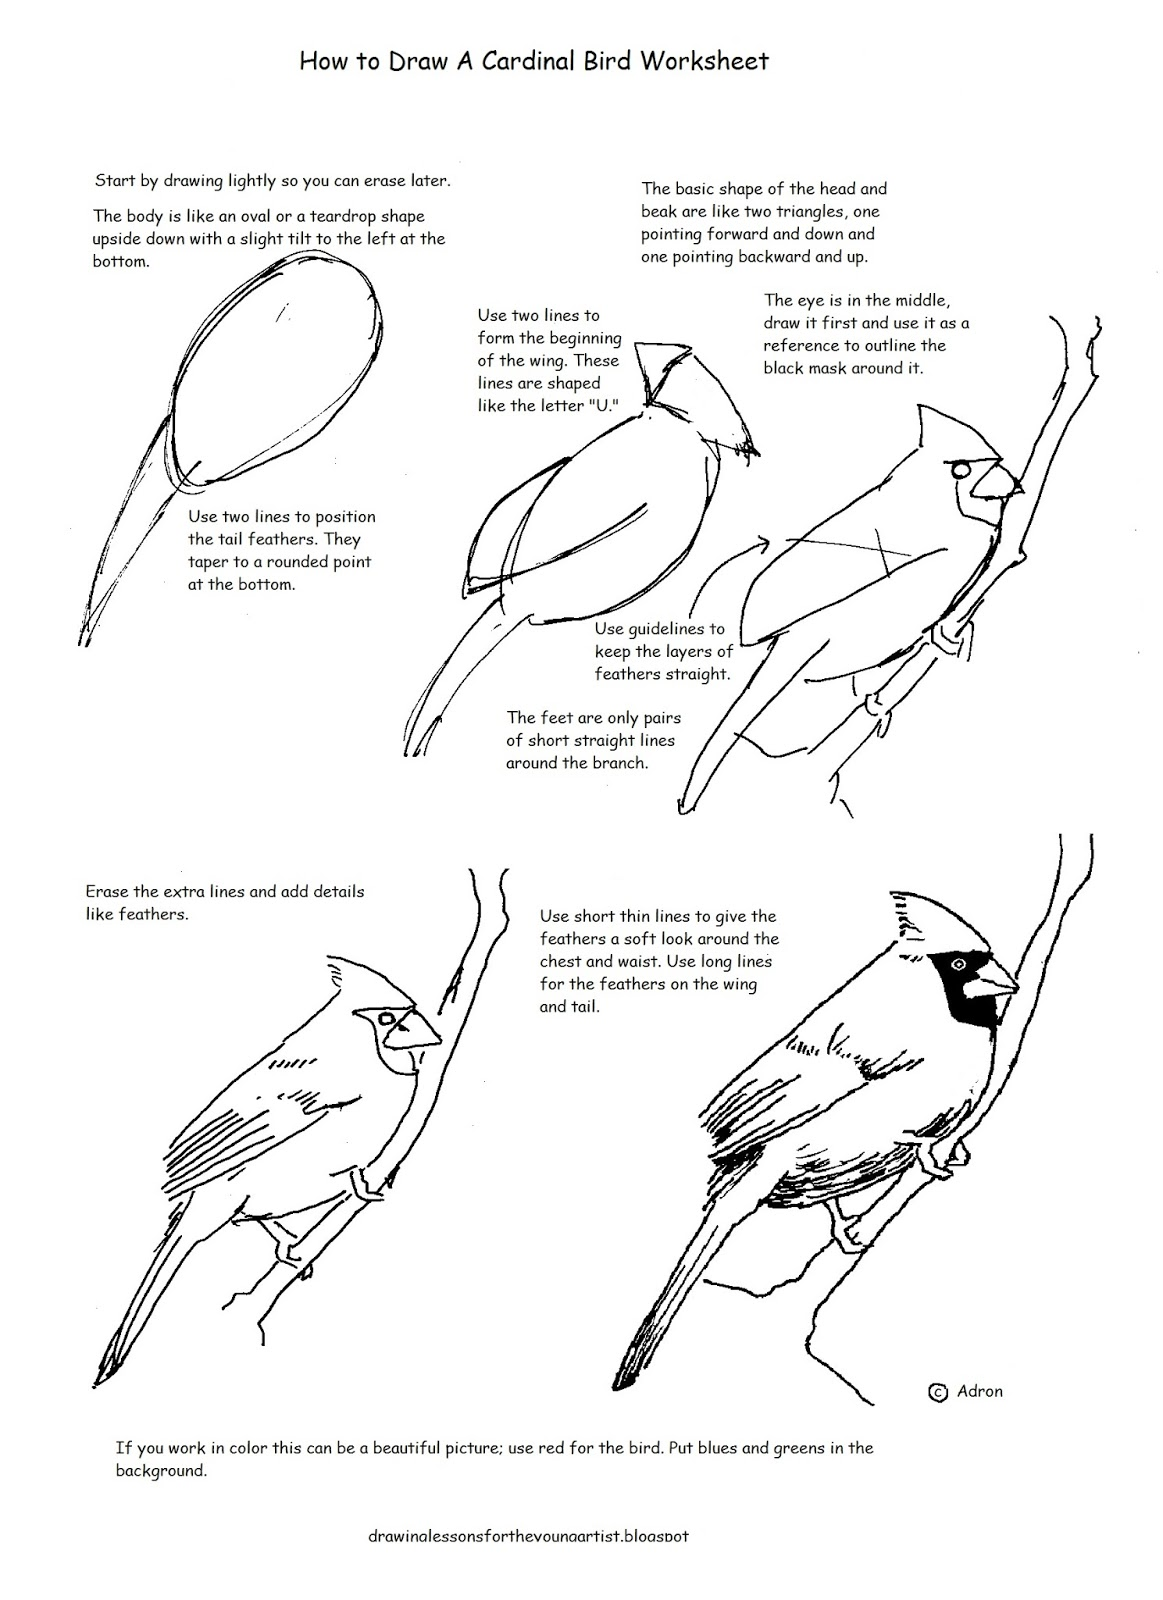 Uncategorized Bird Worksheets how to draw worksheets for the young artist a cardinal bird worksheet